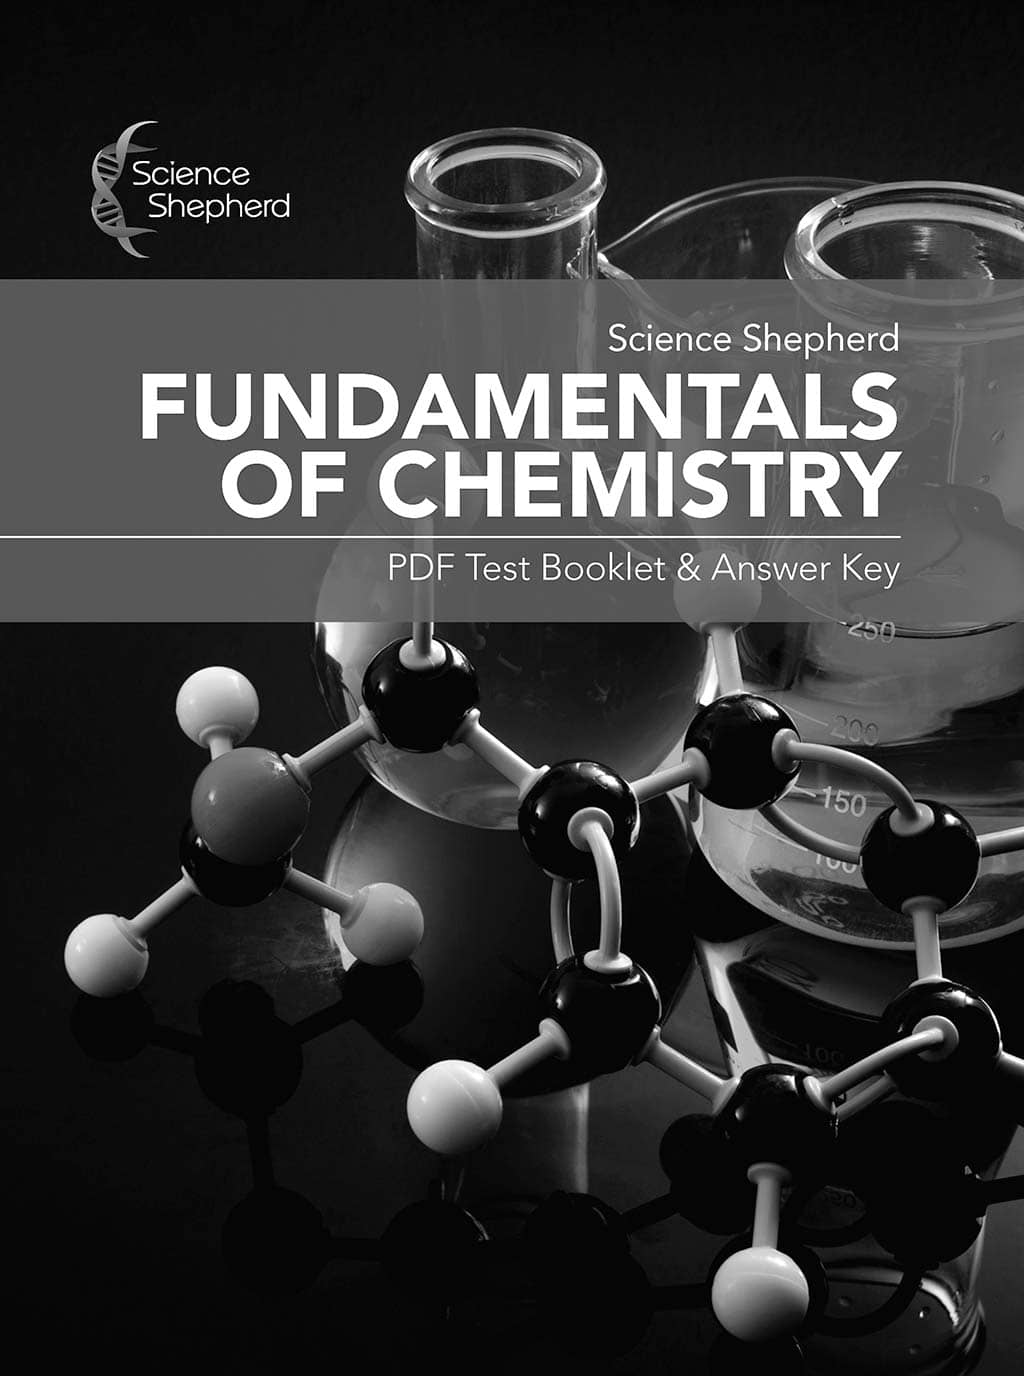 Fundamentals of Chemistry Test & Answer Key Packet